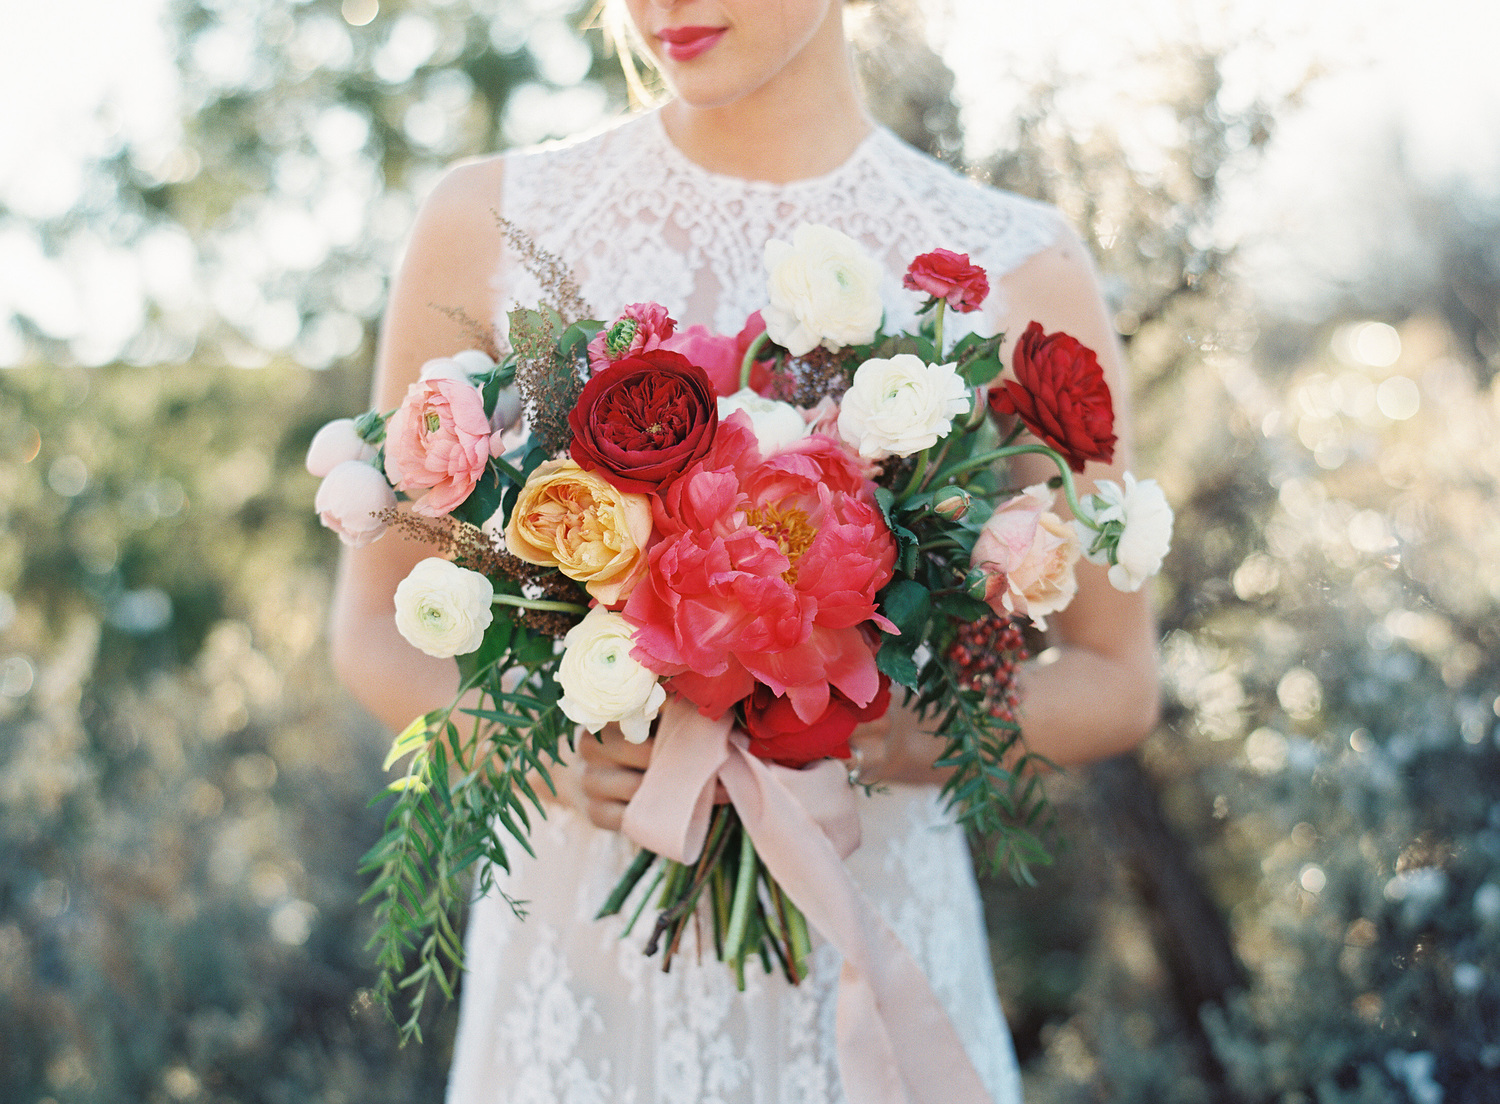 Amazing wedding bouquets_Michelle lywood Florals _ Heather Hawkins Photography